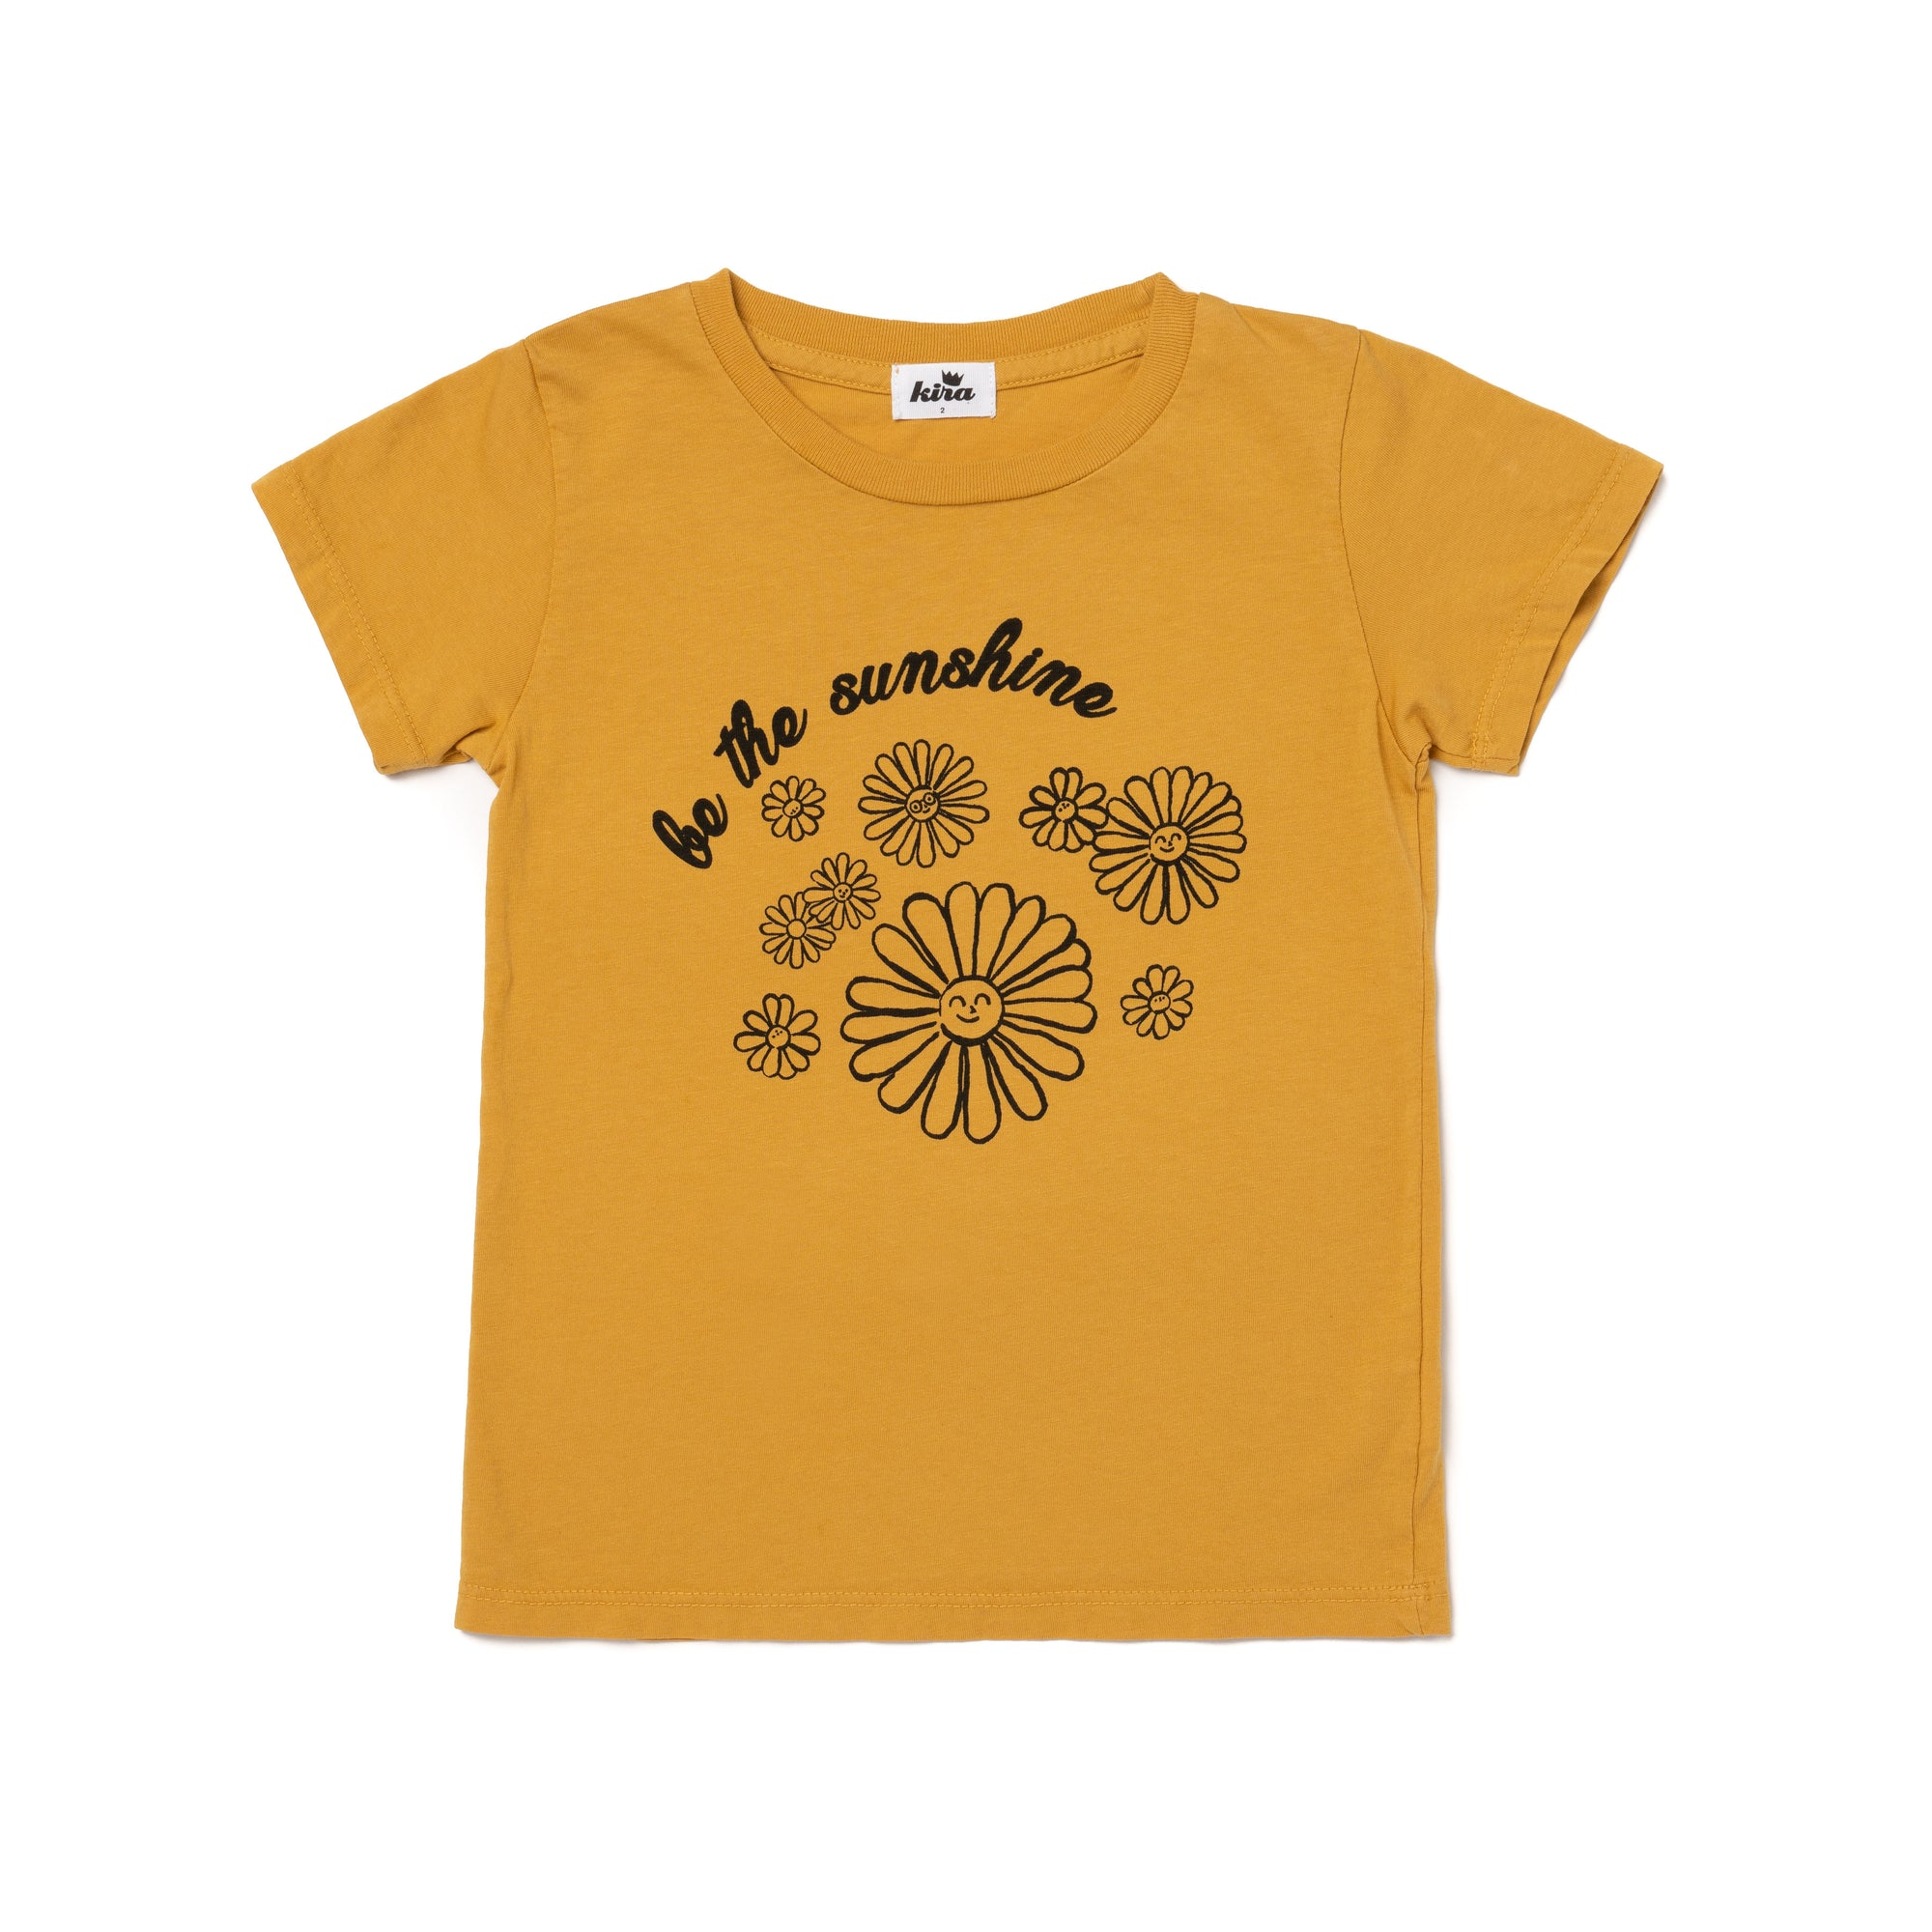 Sunshine Daisies Graphic Short Sleeve T-shirt, Golden